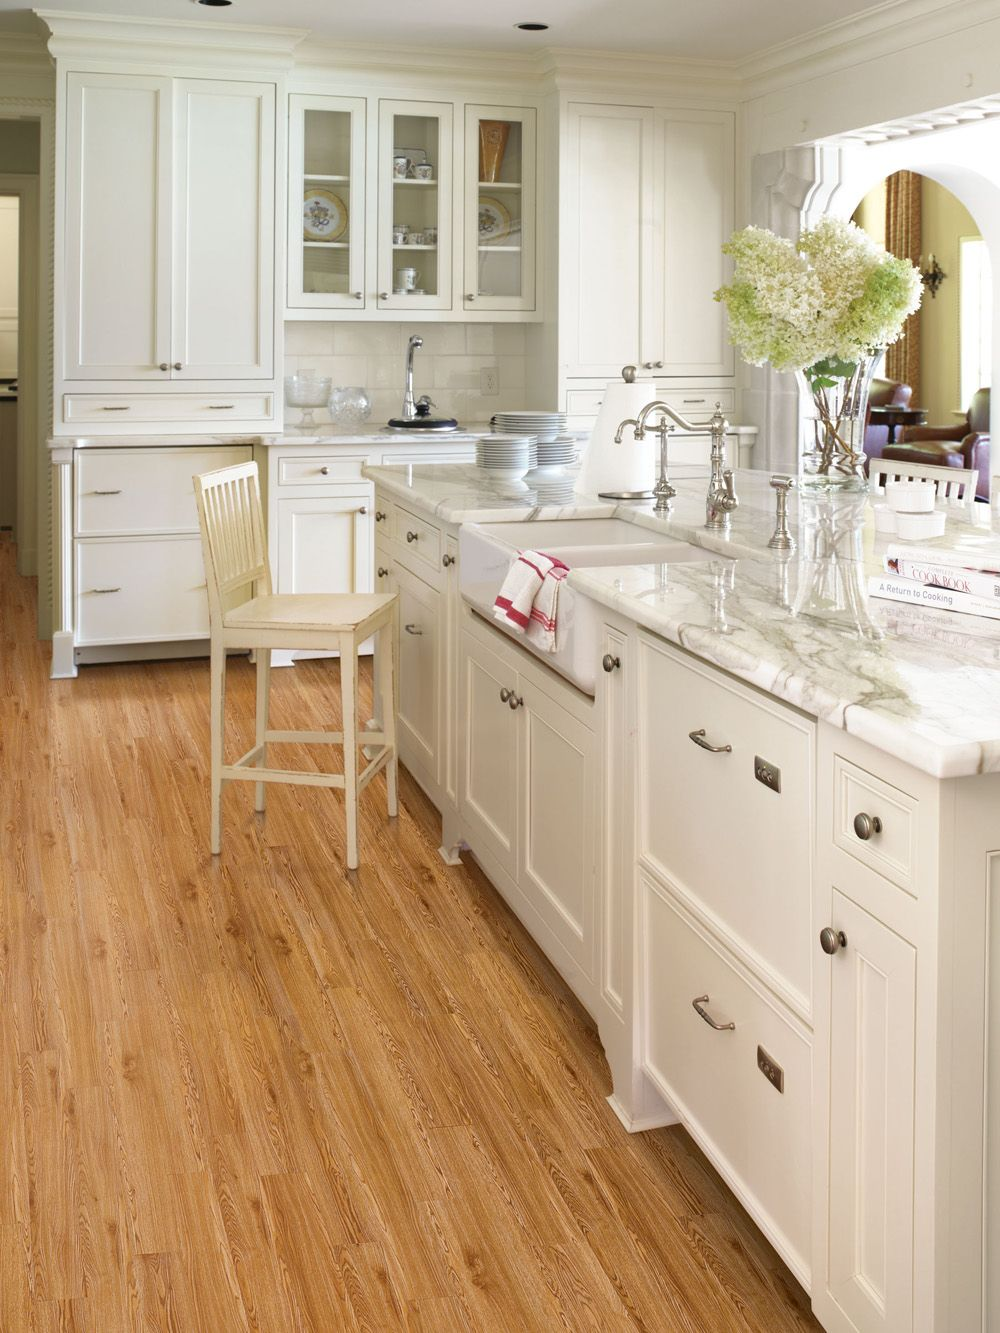 Best For A Cozy Yet Modern Kitchen Pair Your Light Wood Floors 400 x 300